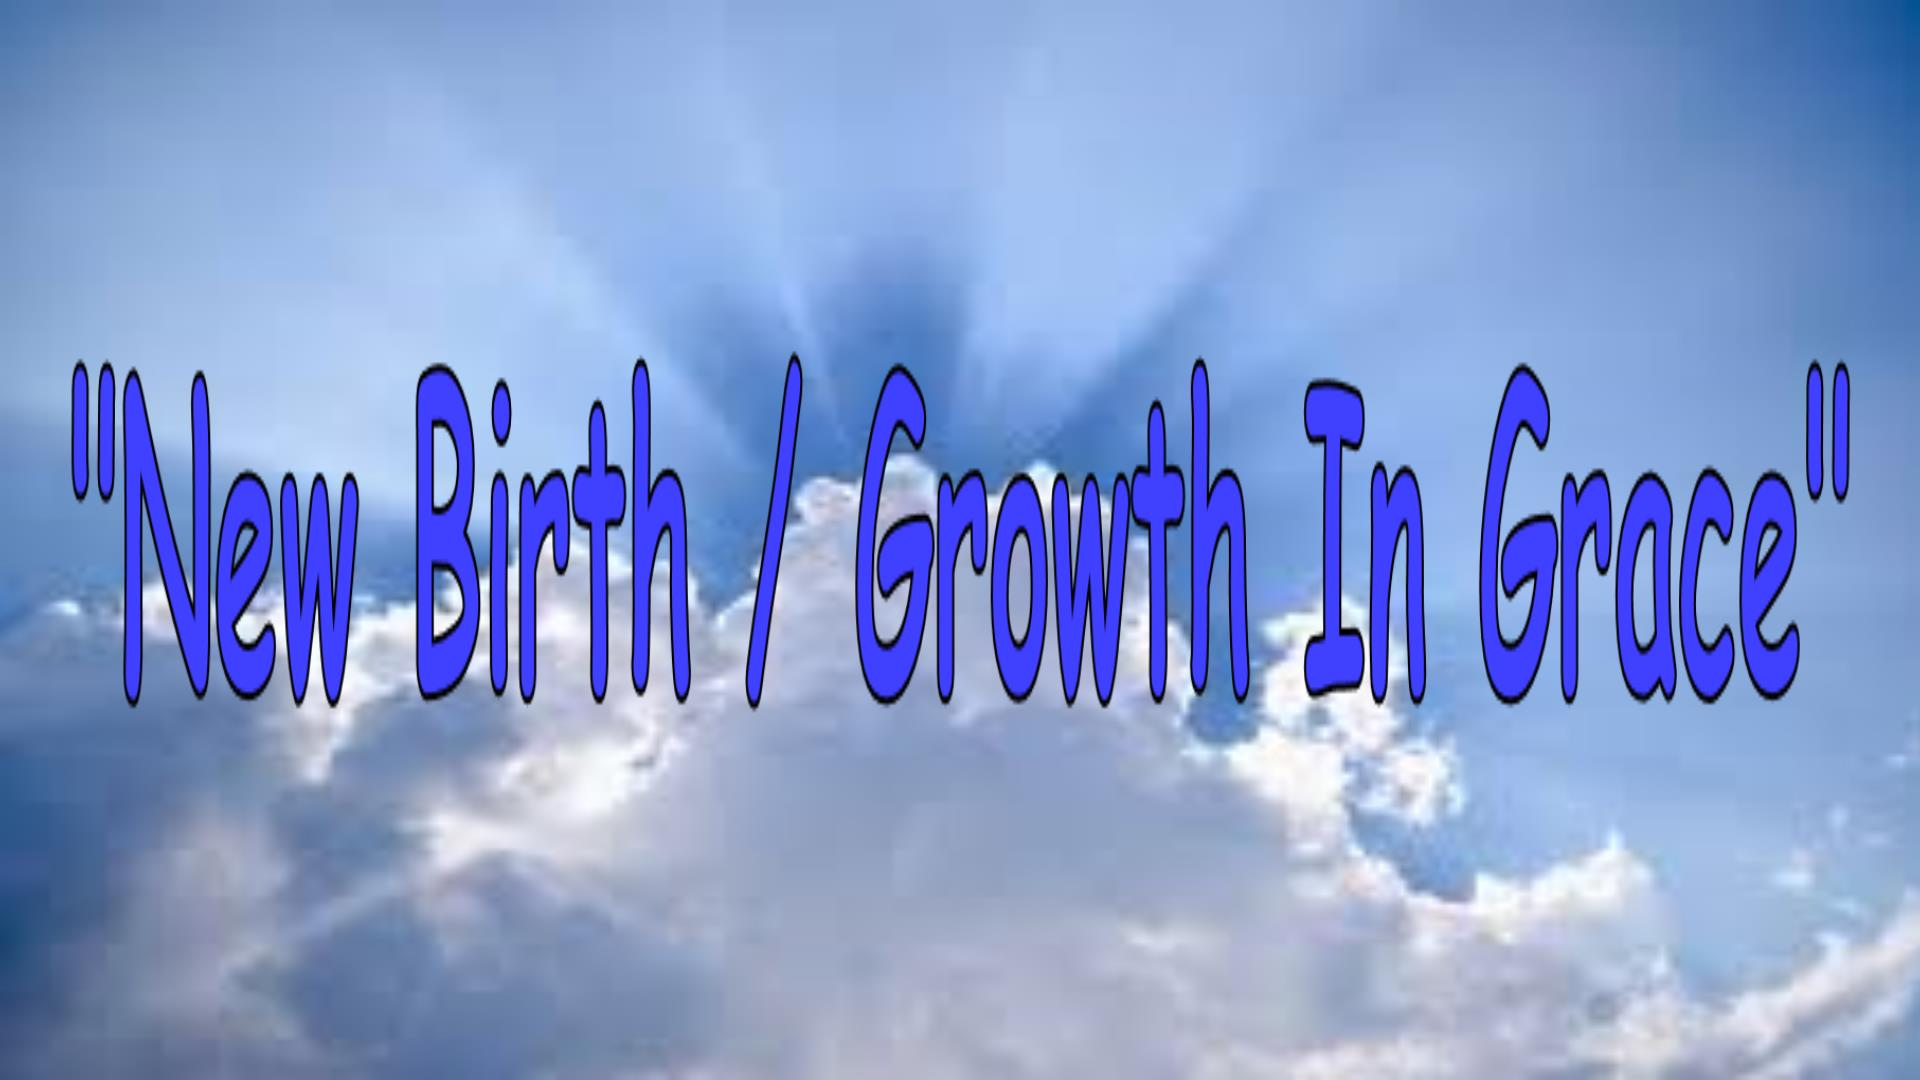 New Birth / Growth In Grace